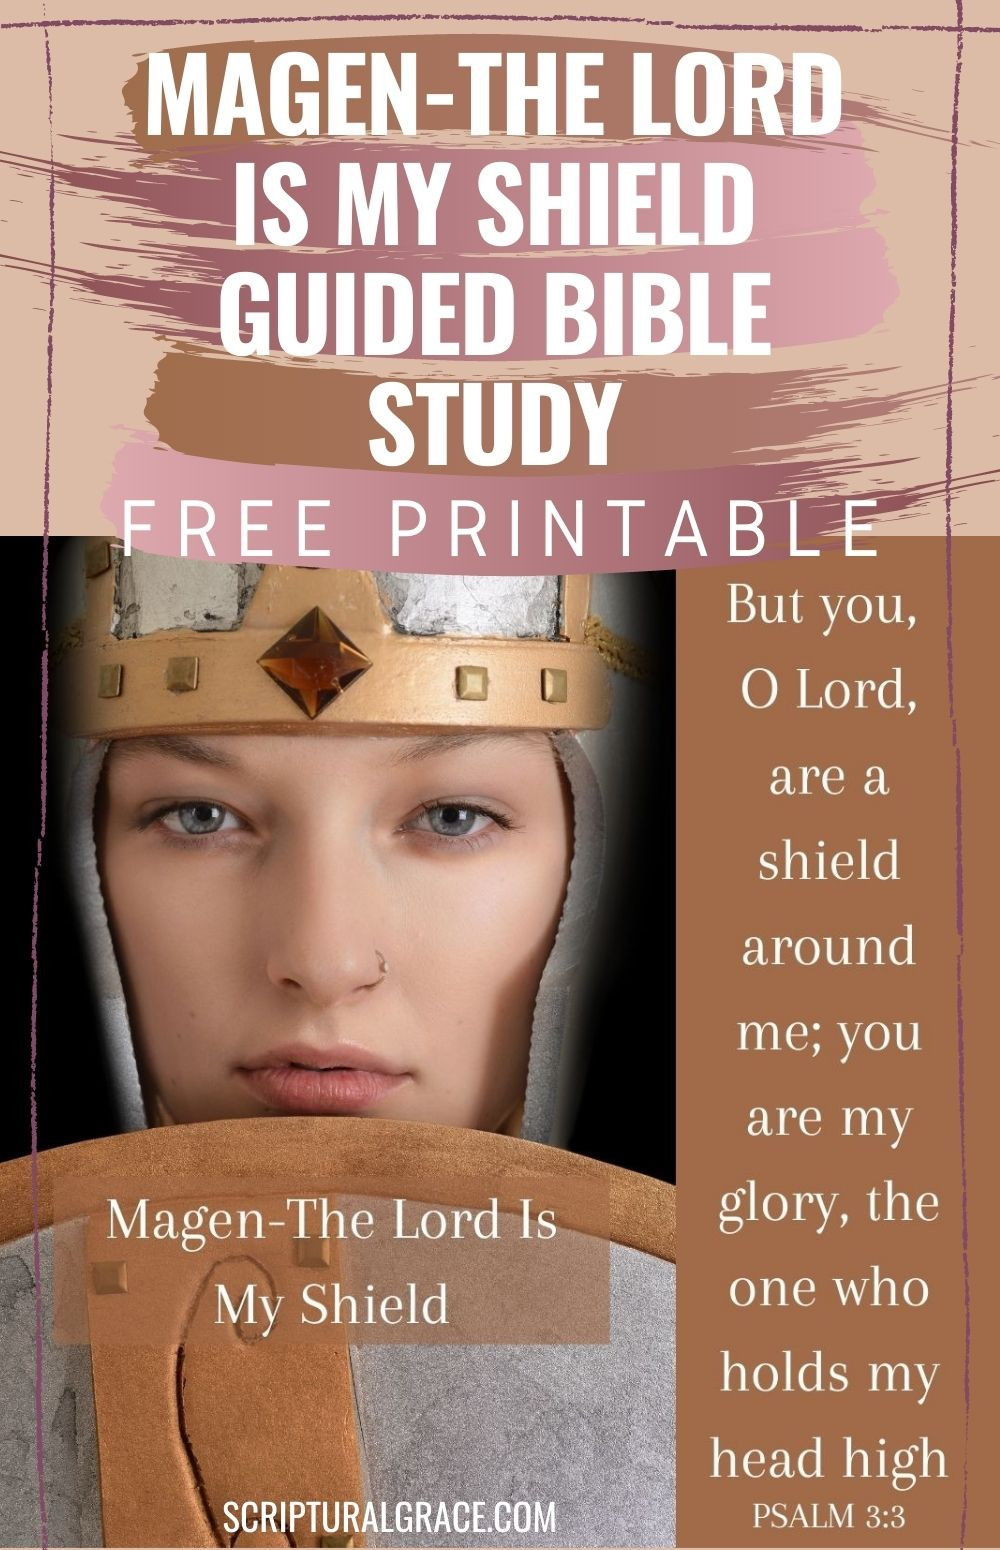 Magen name of God The Lord Is My Shield. Bible study and free printable